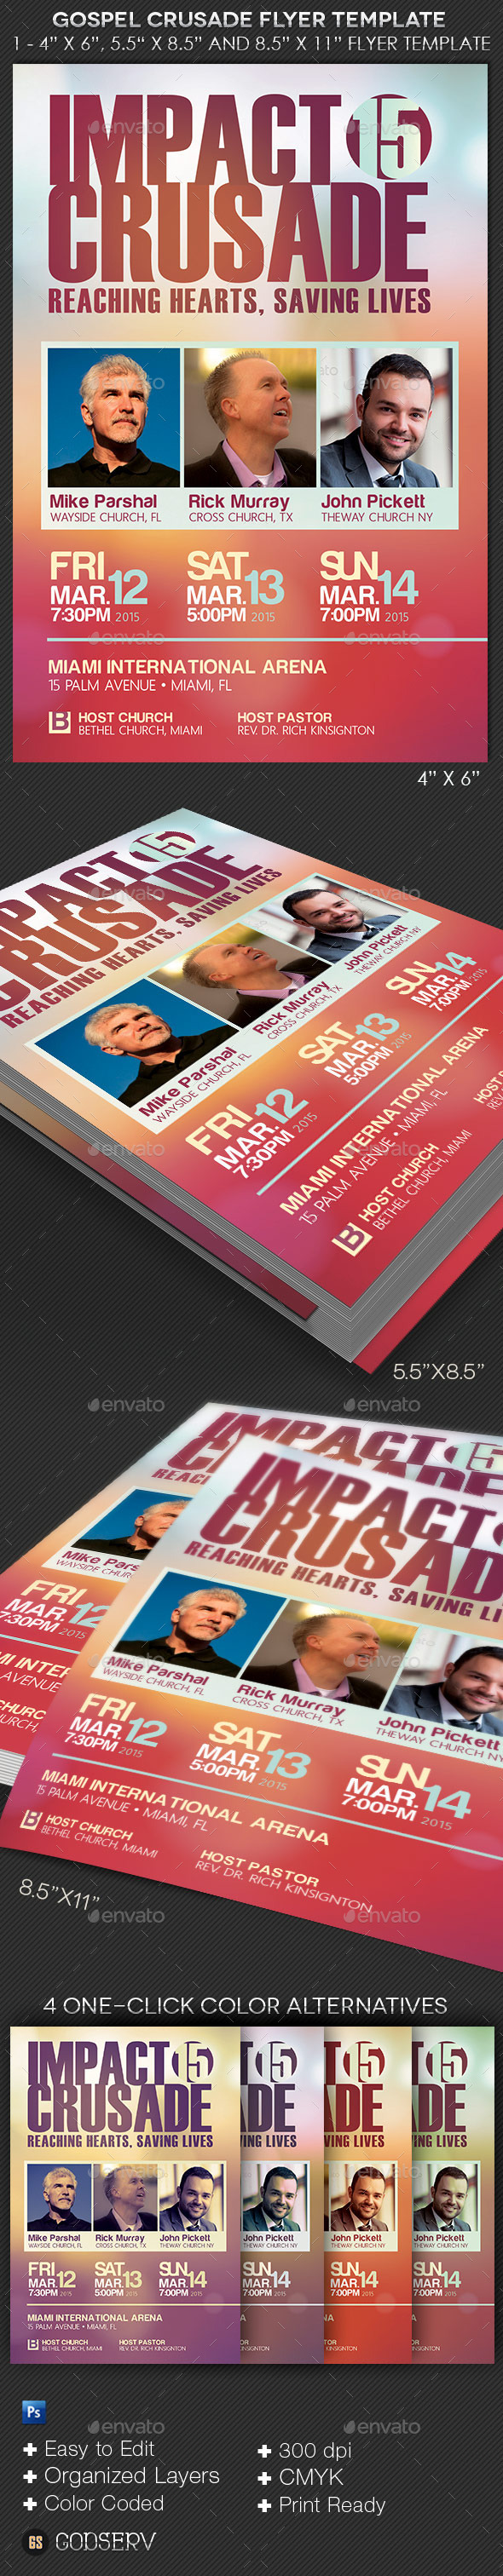 gospel crusade flyer template is for any kind of church outreach gospel crusade flyer template is for any kind of church outreach event the modern design